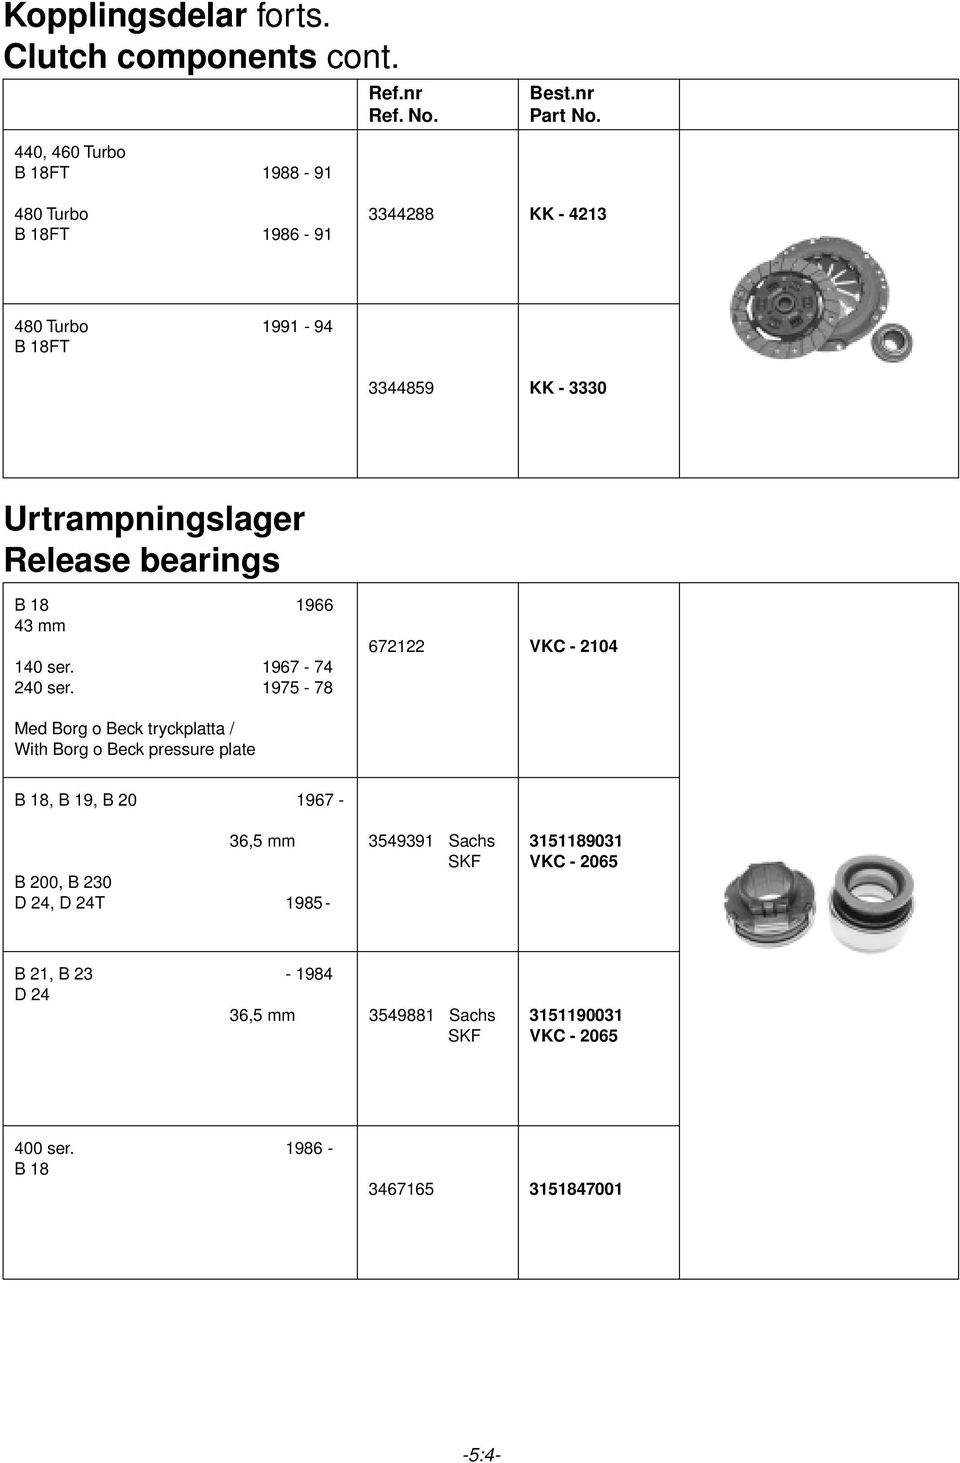 Release bearings B 18 1966 43 mm 140 ser. 1967-74 240 ser.